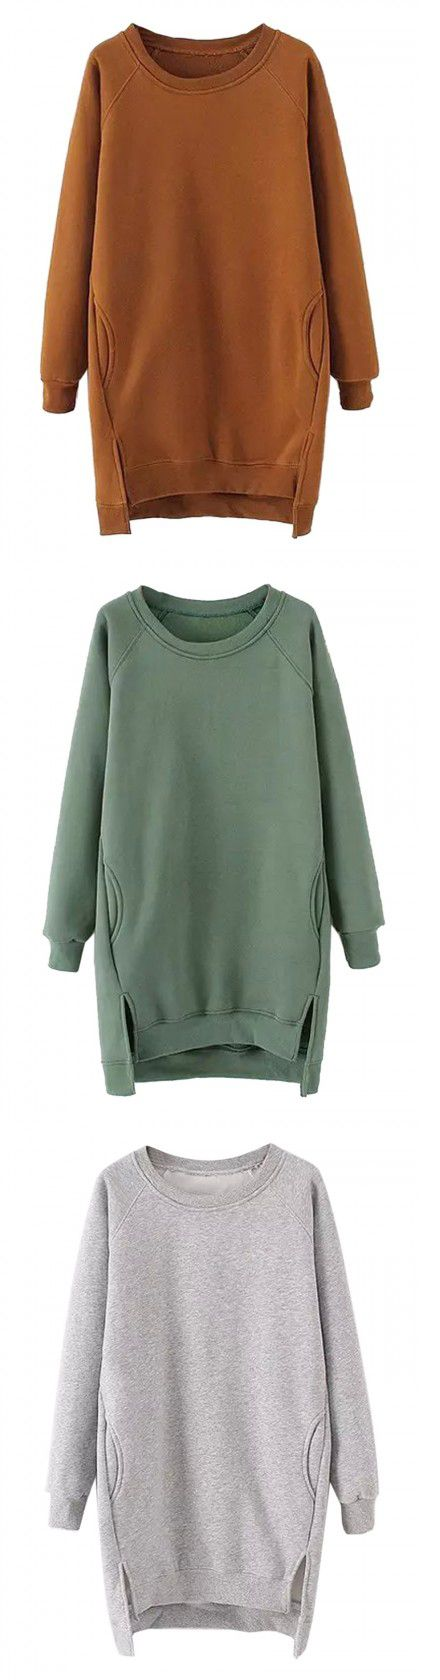 What to wear with these cute sweatshirts this fall!